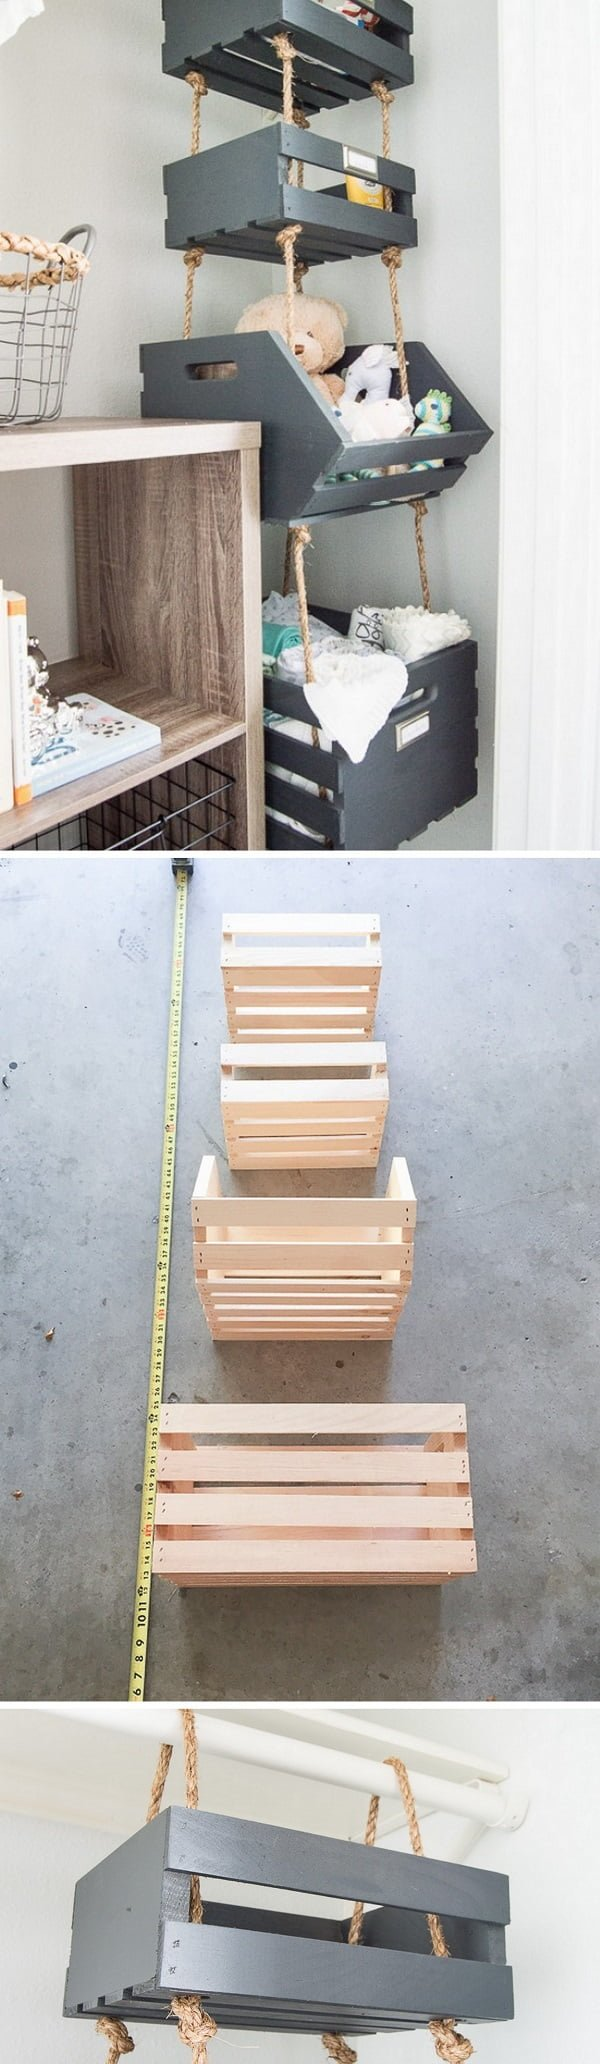 Check out the tutorial how to make DIY hanging closet crate shelves